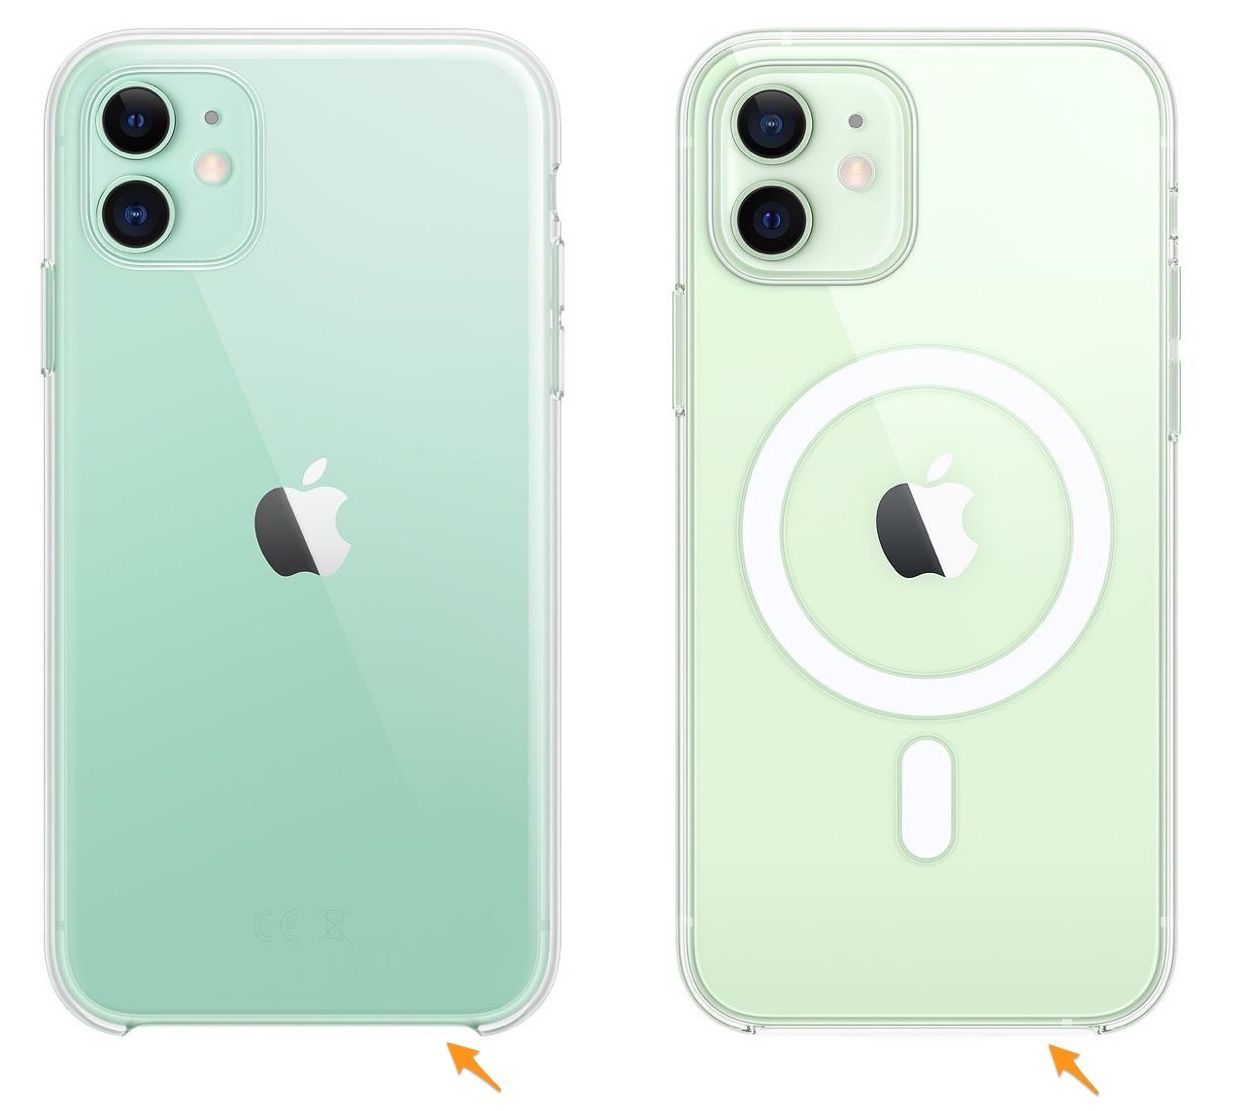 mg 13d8fde0 w1287 w828 w1250 - Apple cases even cover the bottom of iPhone 12s - iGeneration